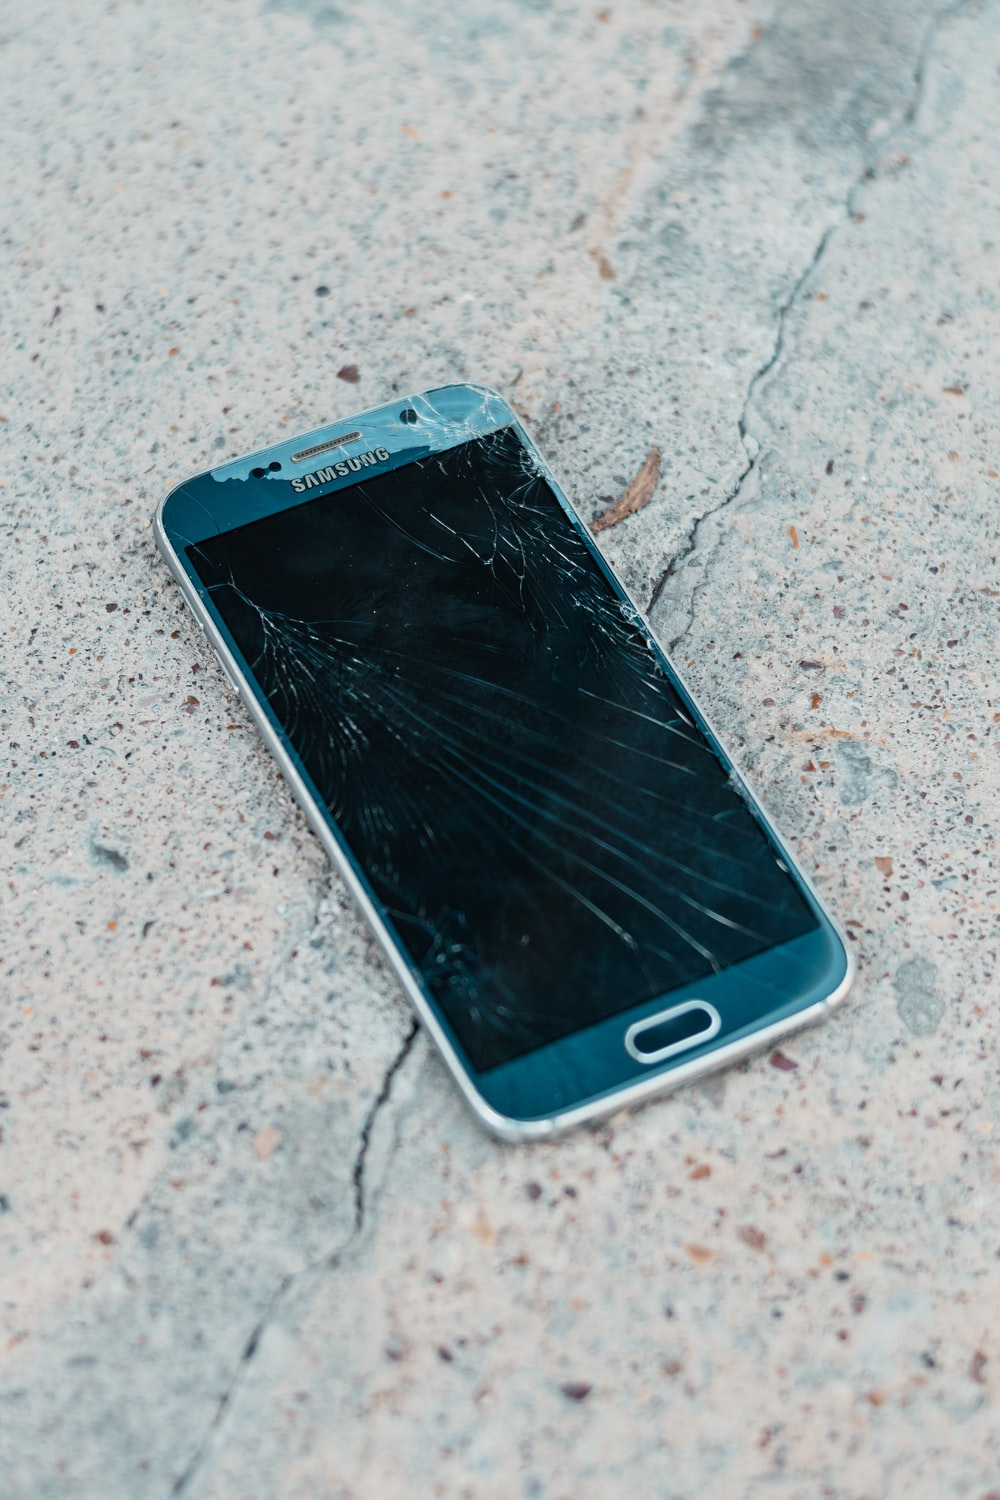 Broken Phone Pictures Download Free Images On Unsplash